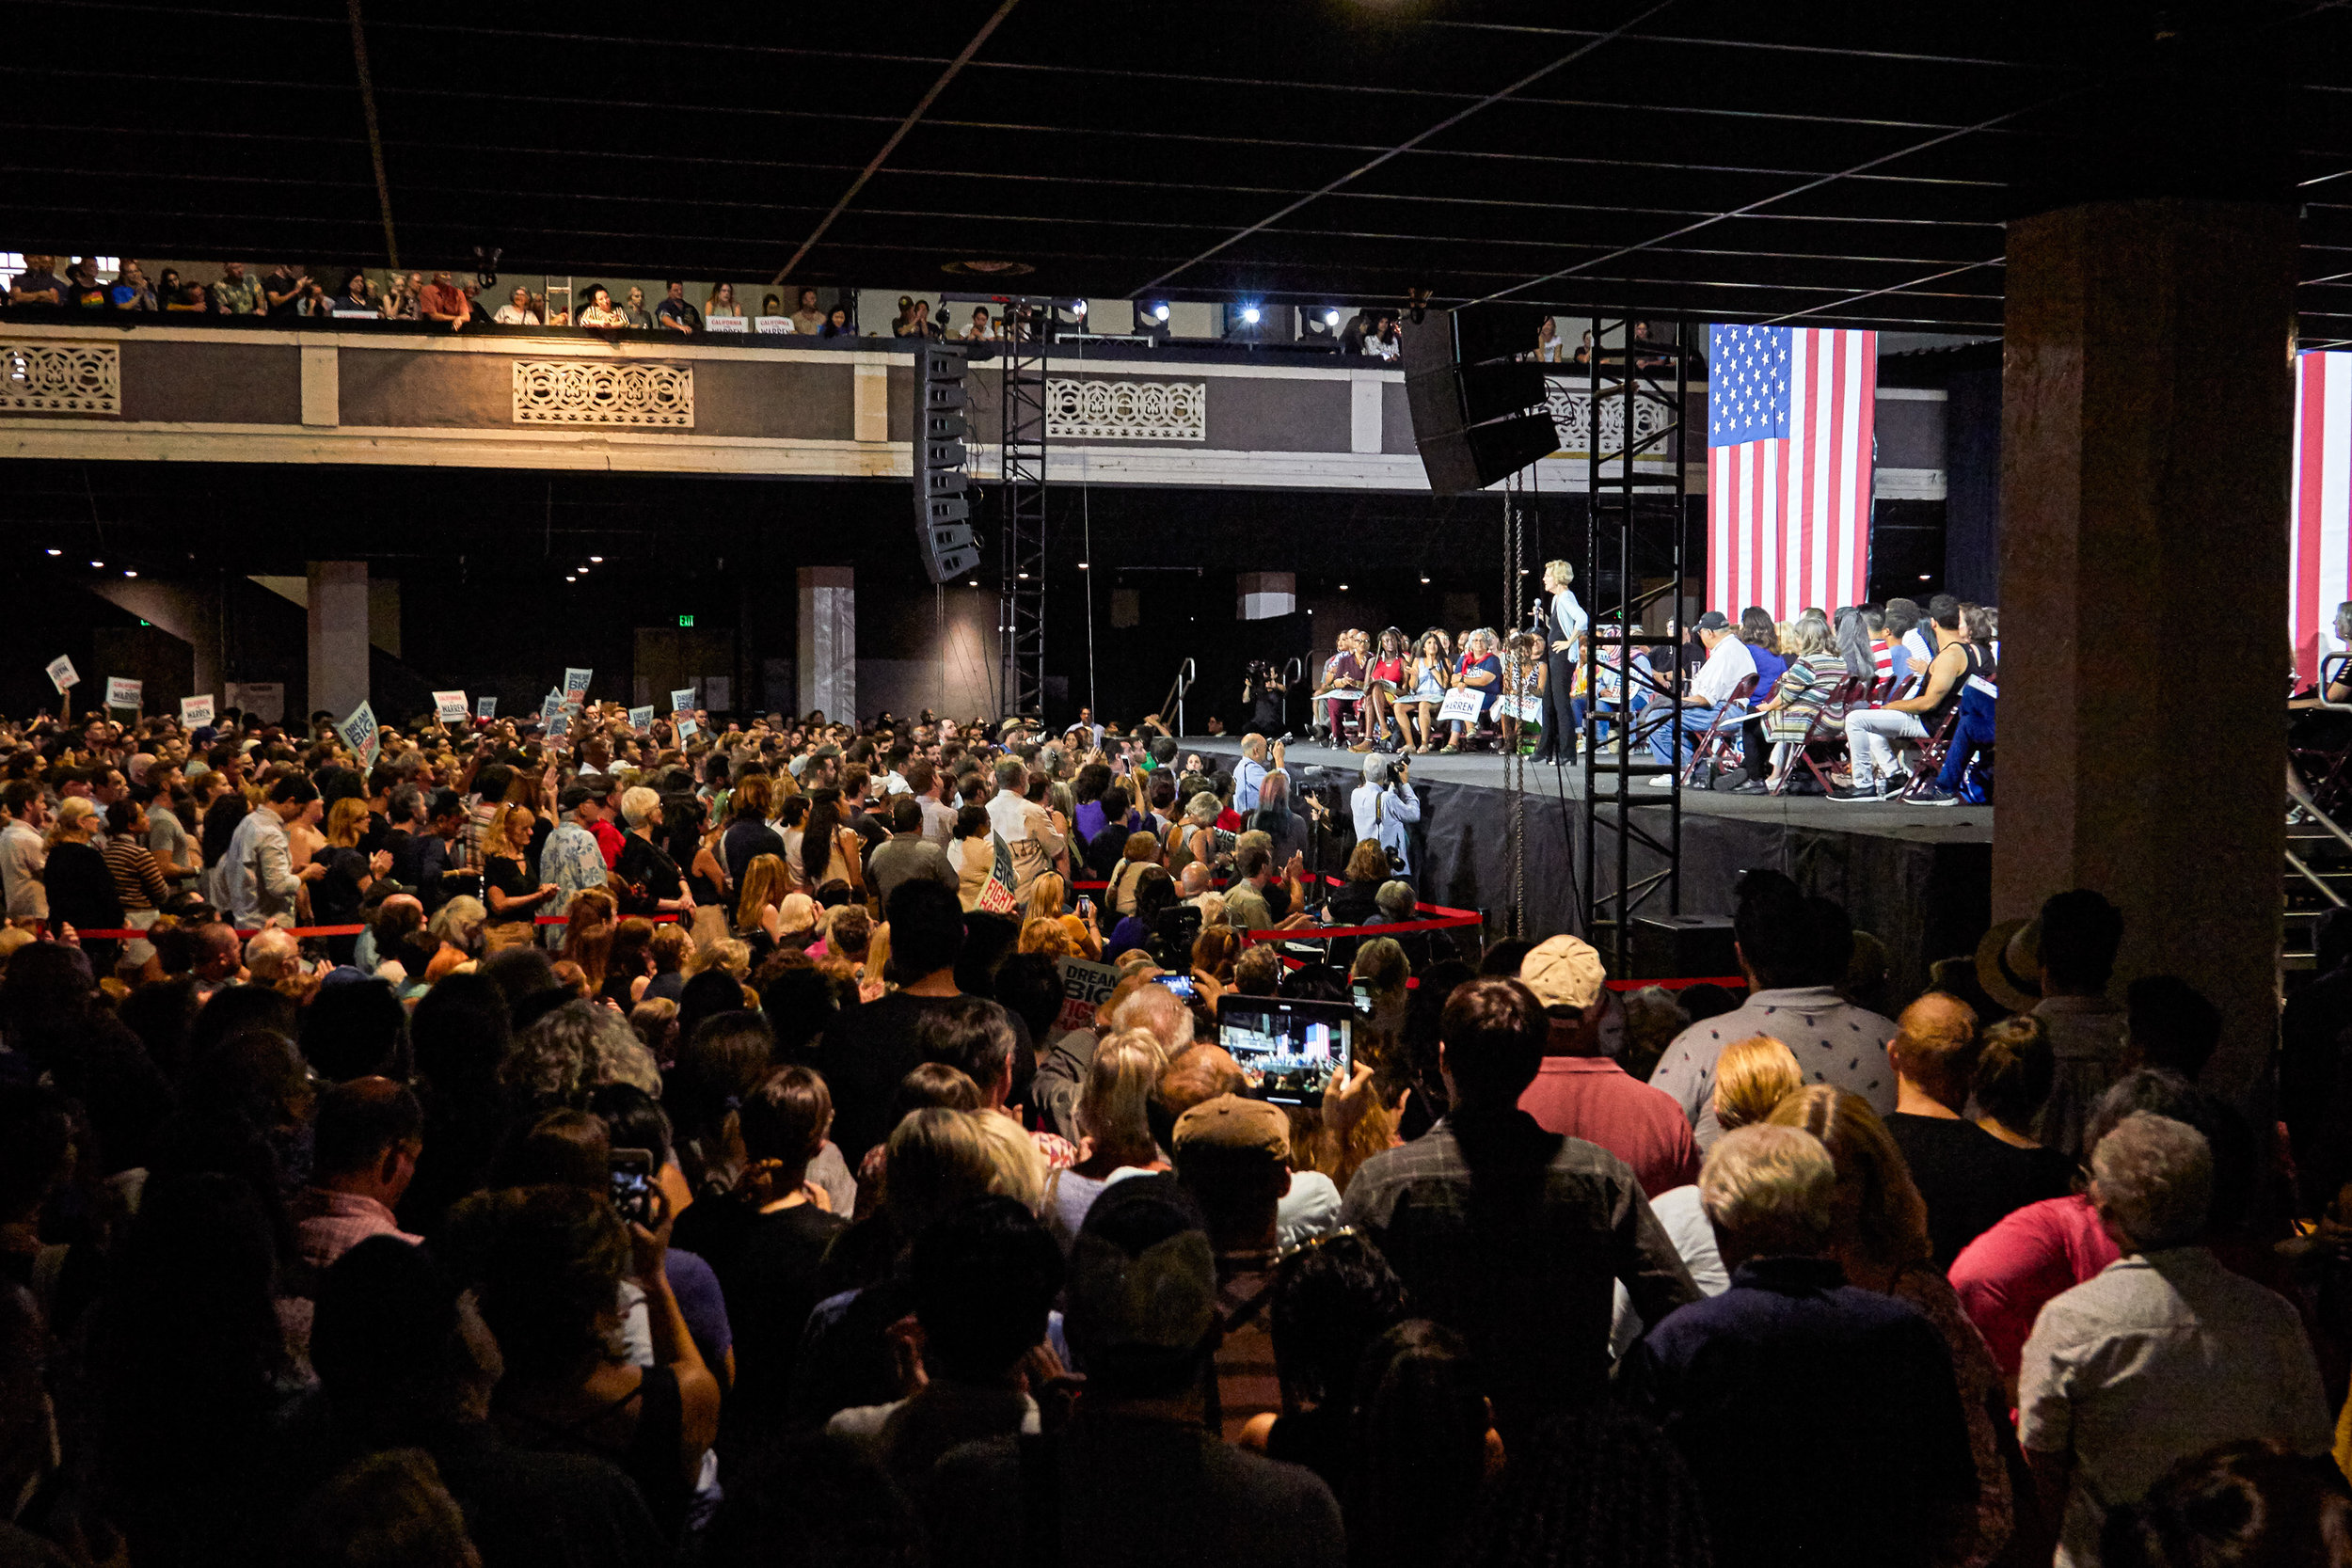 People in the audience listen to Massachusetts senator Elizabeth Warren speaking at a Town Hall event for her presidential campaign, at the Shrine Expo Hall, Los Angeles, California, on August 21st 2019. (Marco Pallotti/The Corsair)